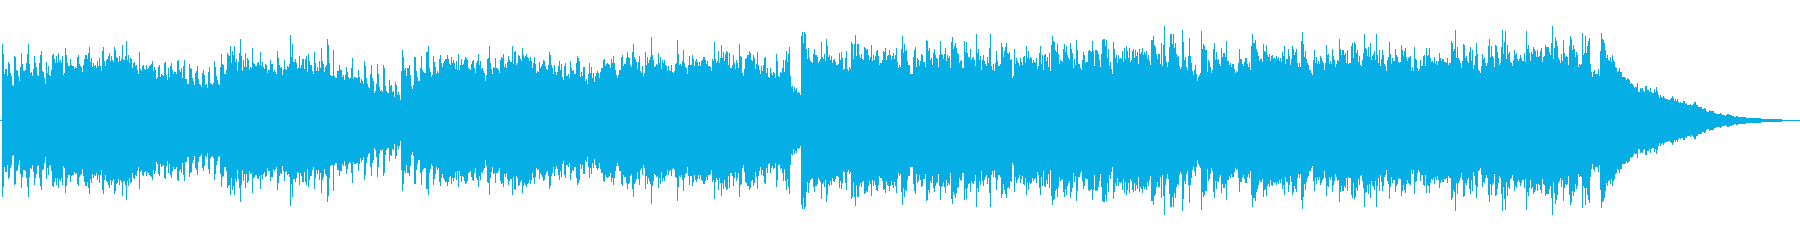 CM / Painful and gentle acoustic pops's reproduced waveform